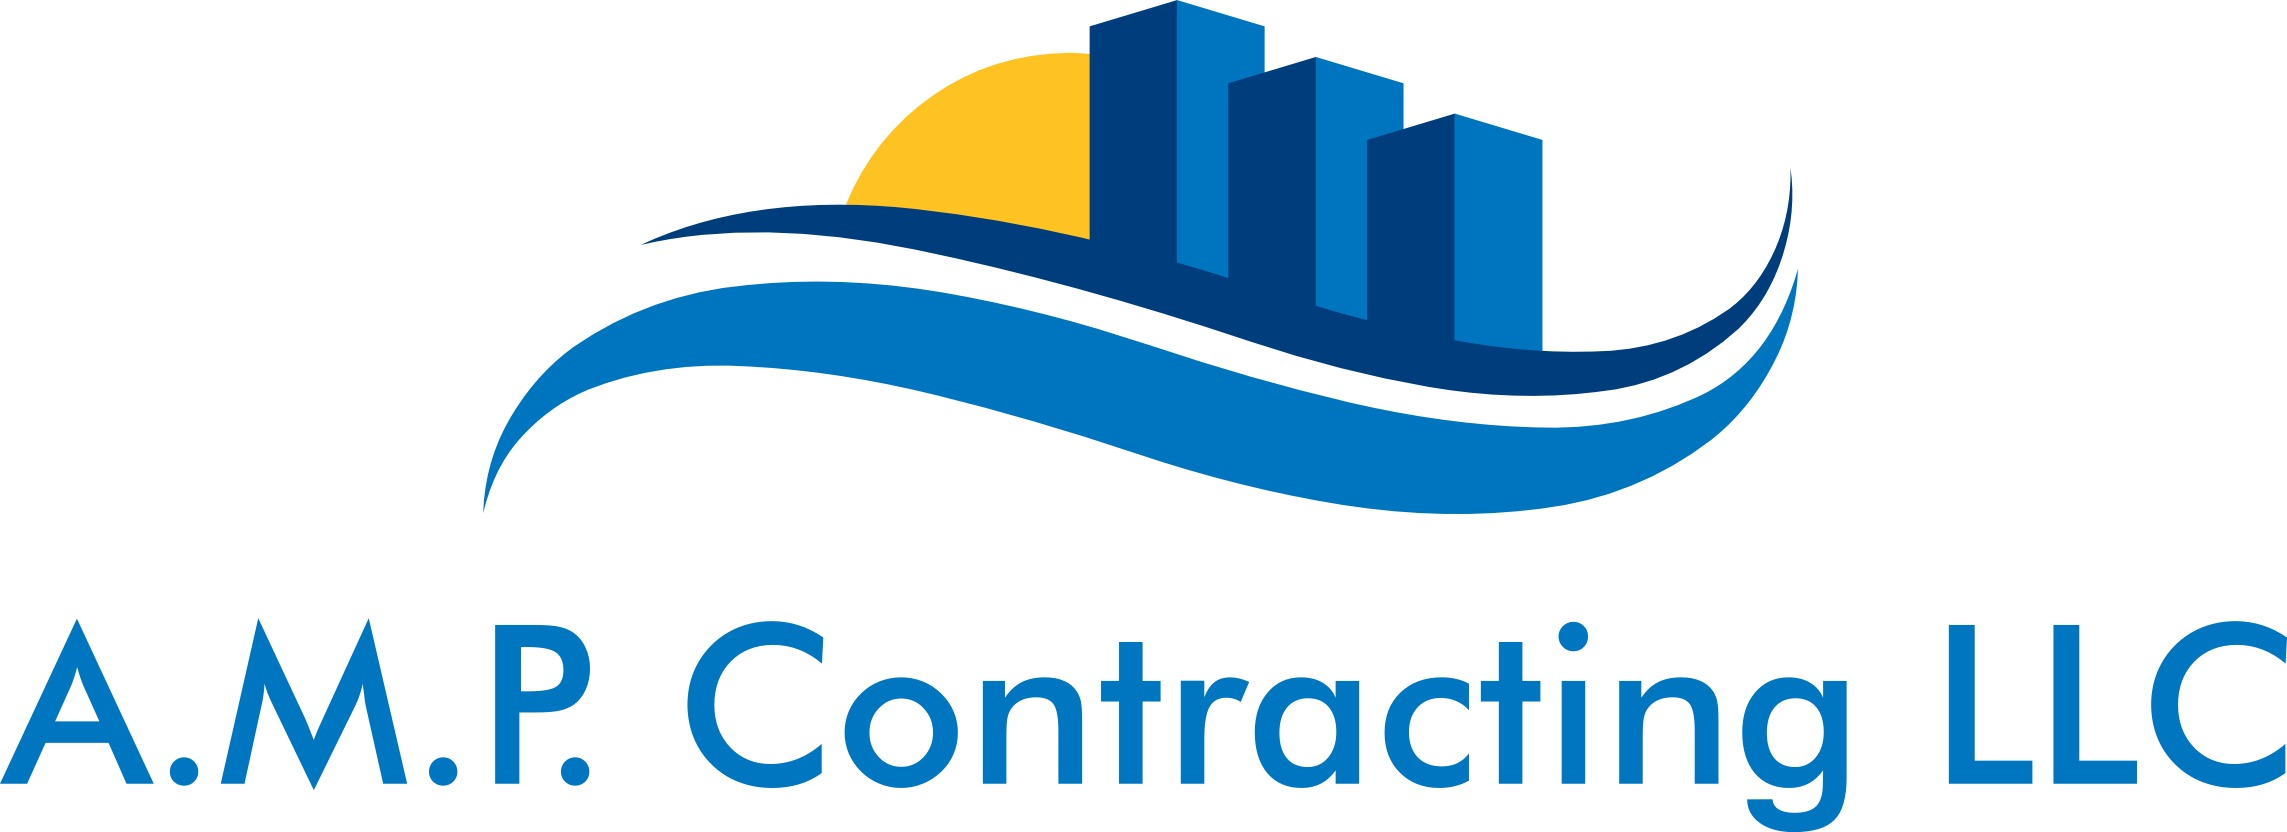 A.M.P. Contracting LLC logo